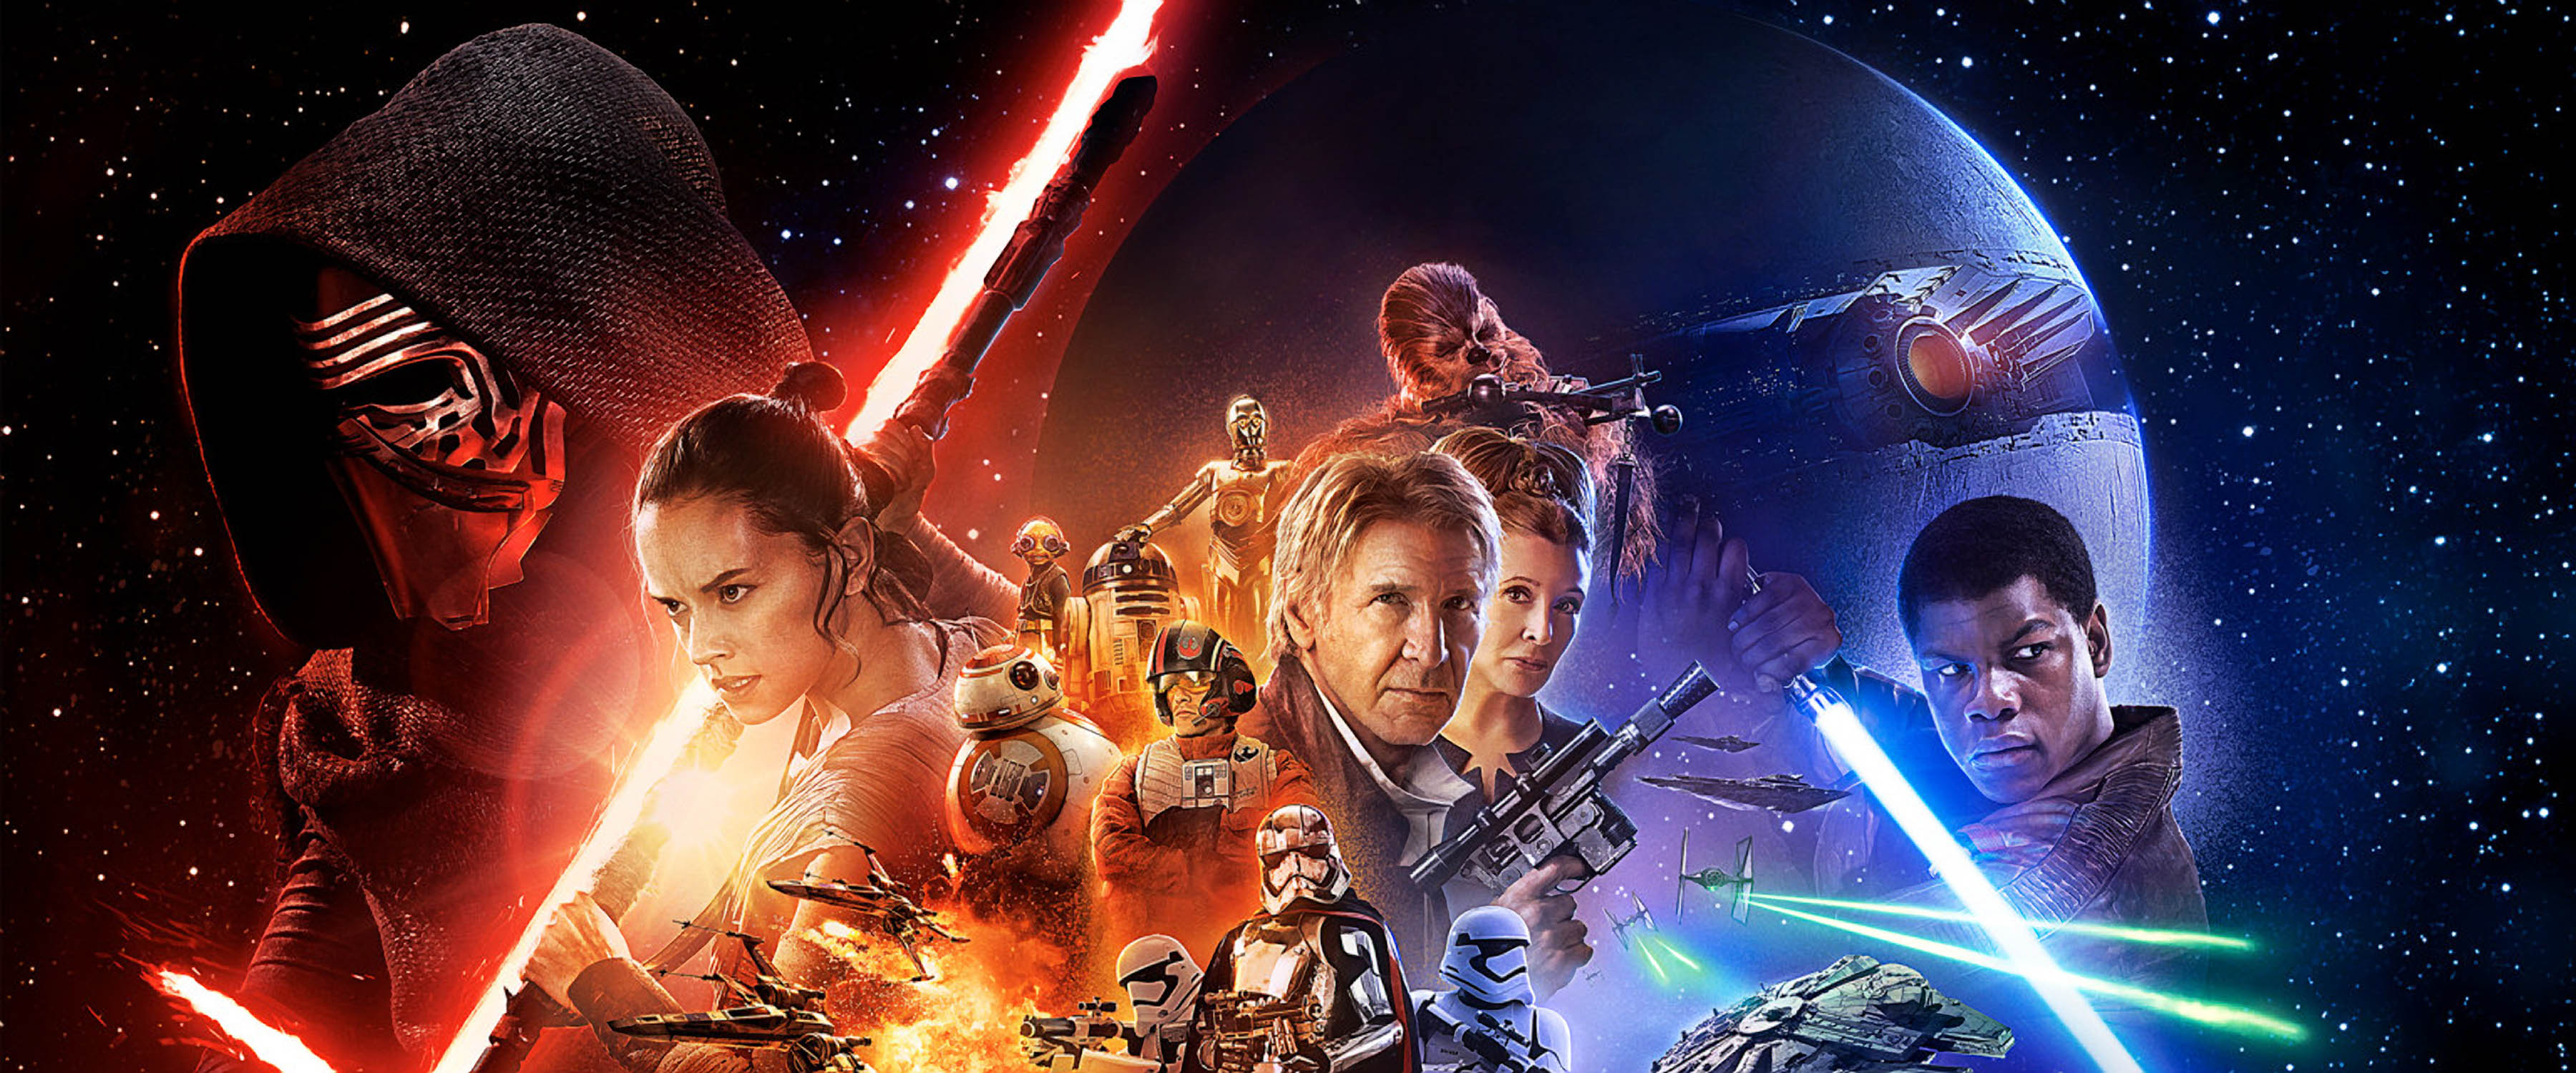 tfa_poster_wide_header-1536x864-959818851016-Edit.jpg